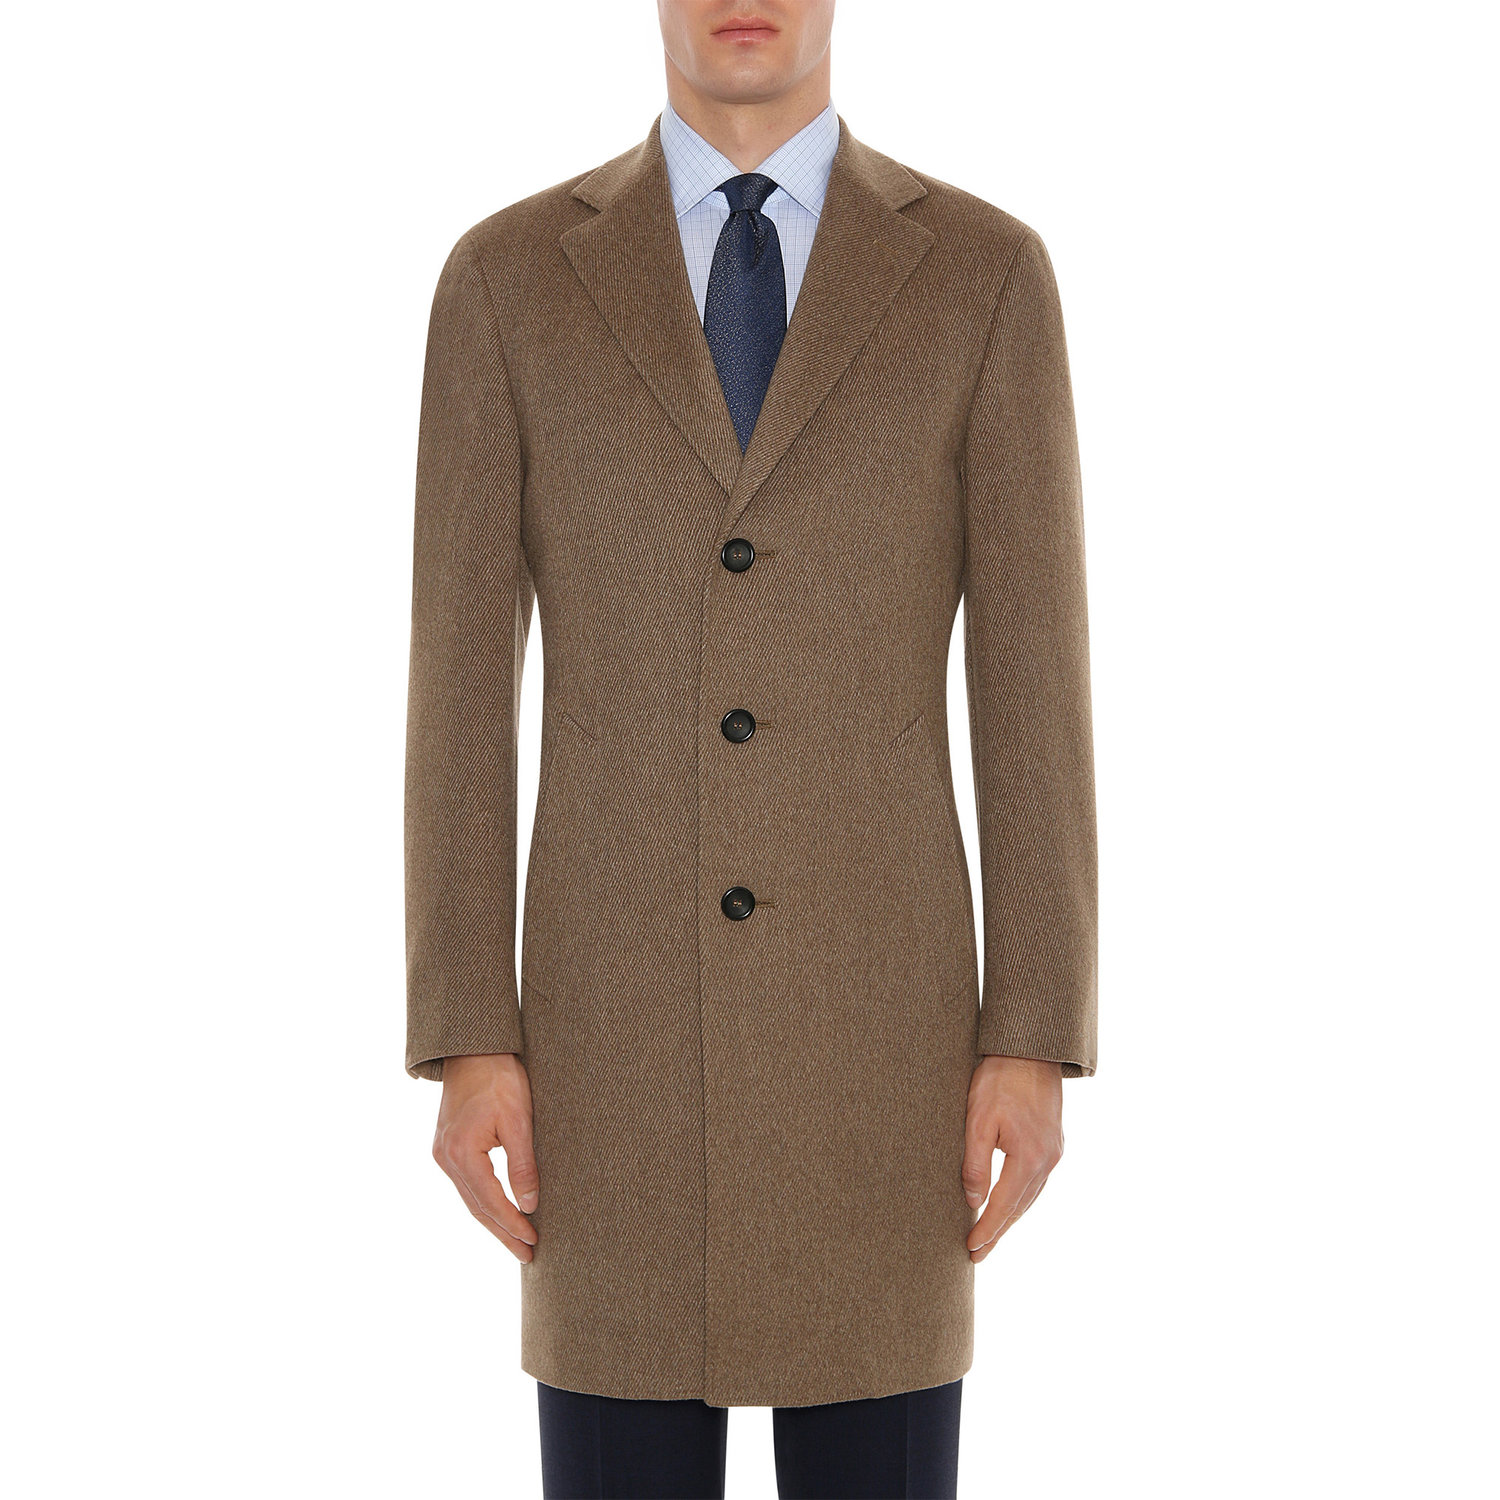 5692e484f4b679 Canali Cashmere & Wool Exclusive Overcoat — Uomo San Francisco | Luxury  European Menswear